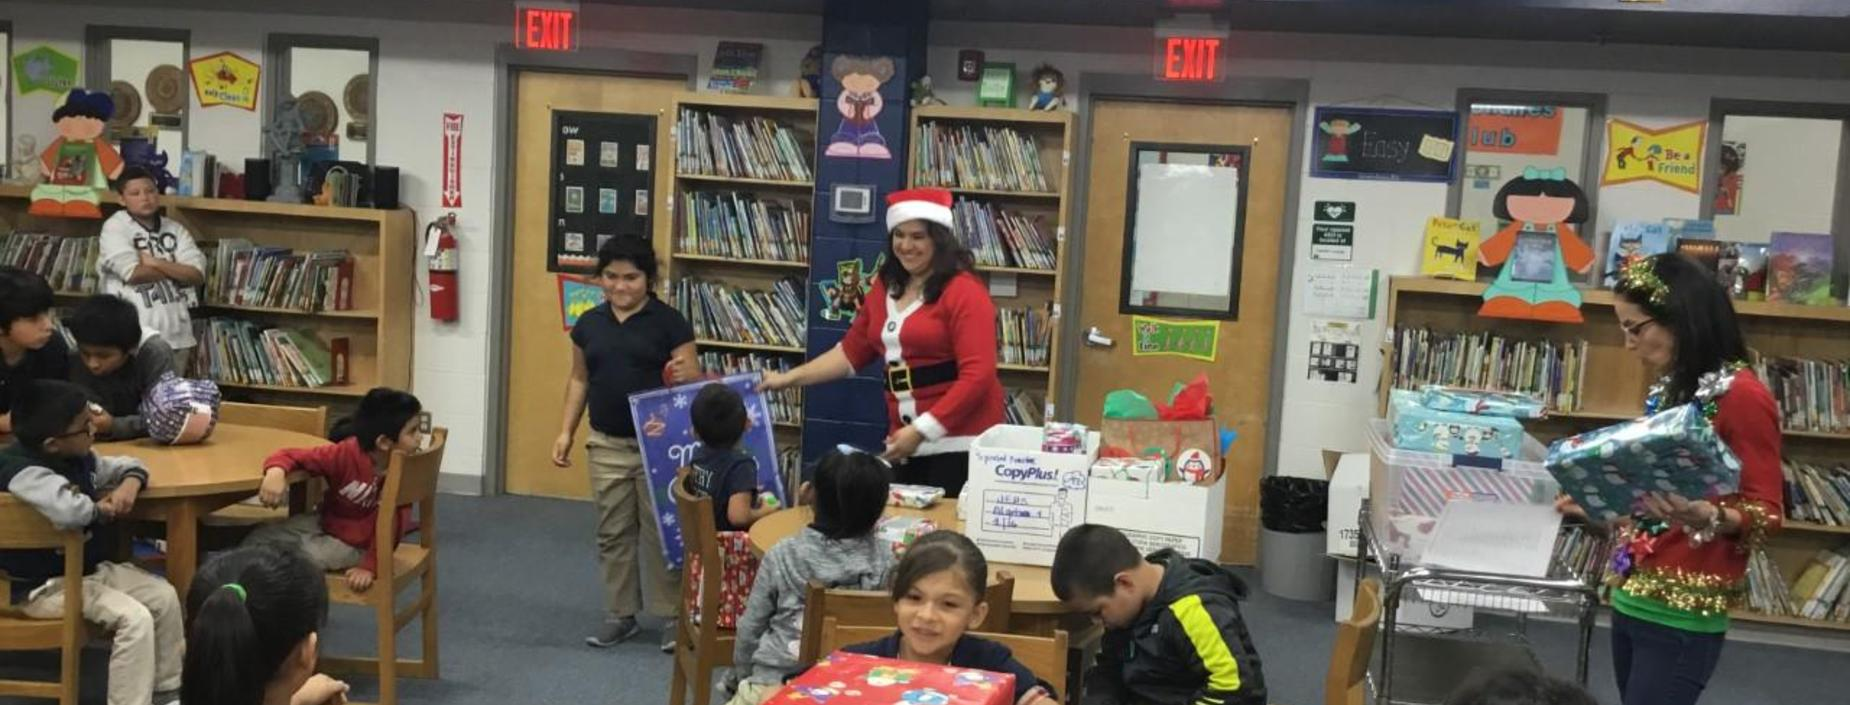 Image of Principal passing out gifts.